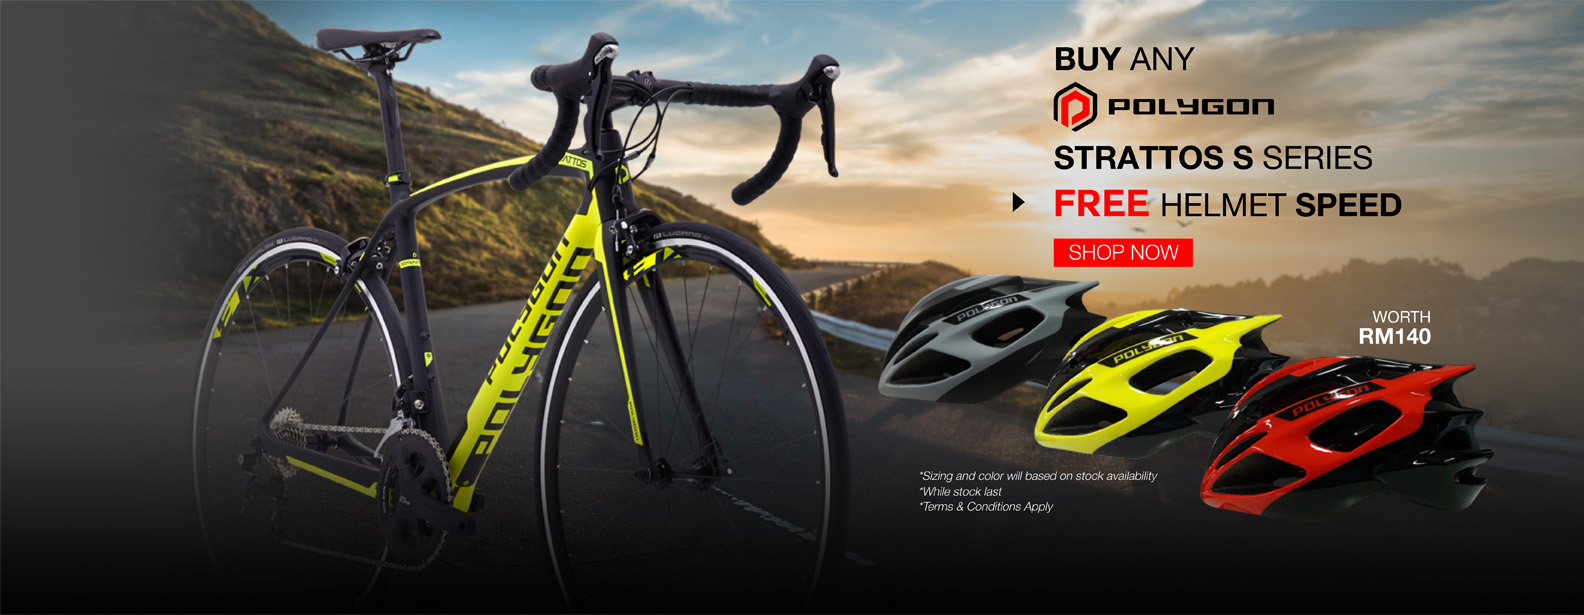 Buy Strattos Free Speed Helmet